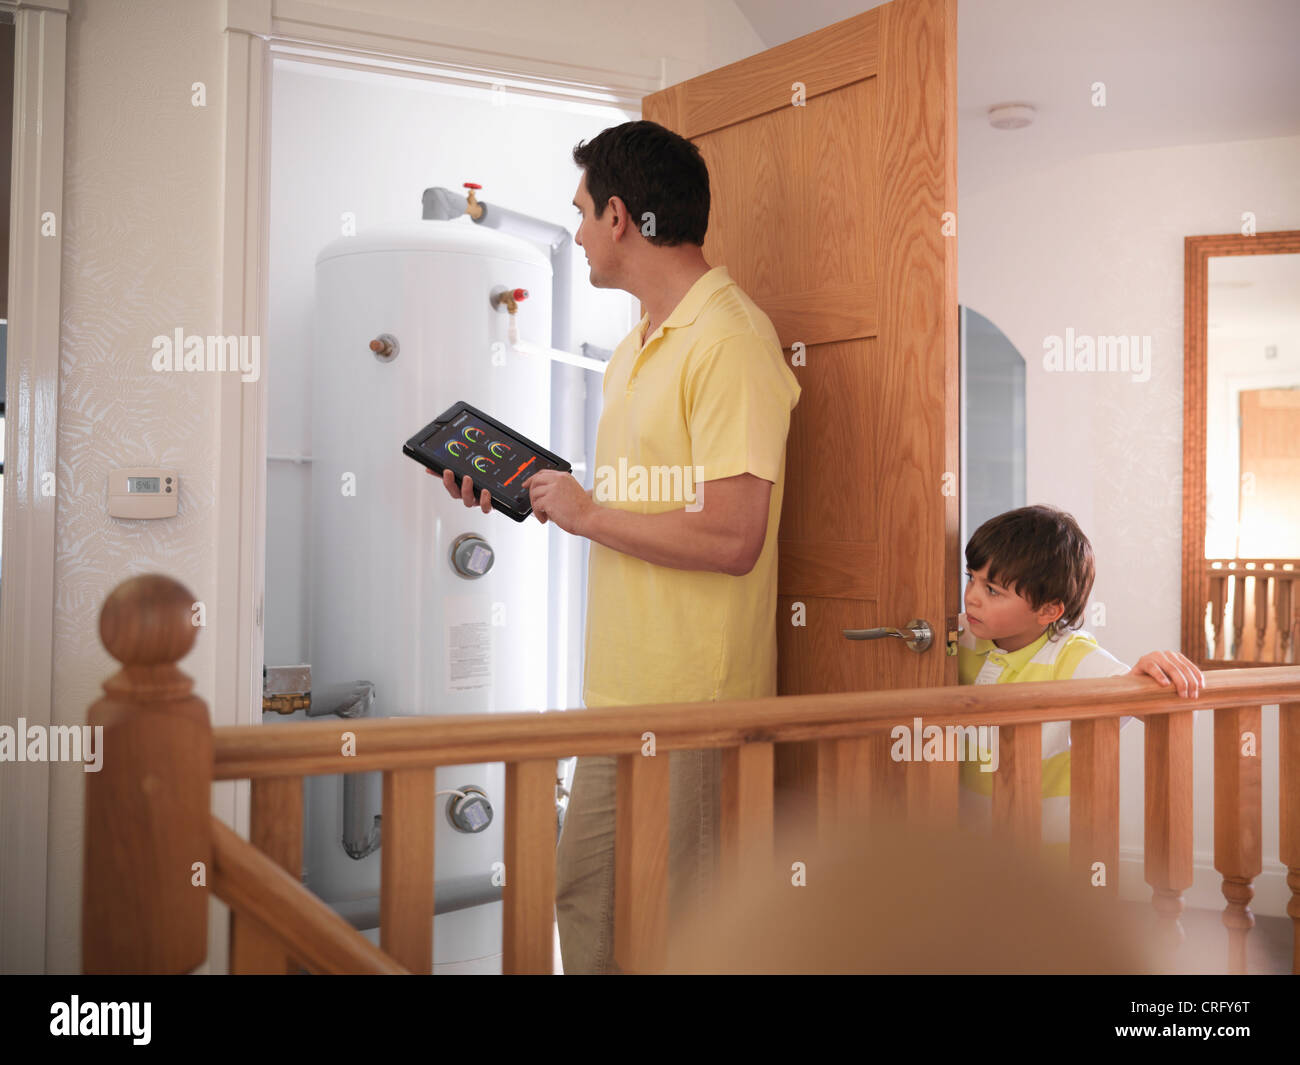 Man checking energy levels in home - Stock Image